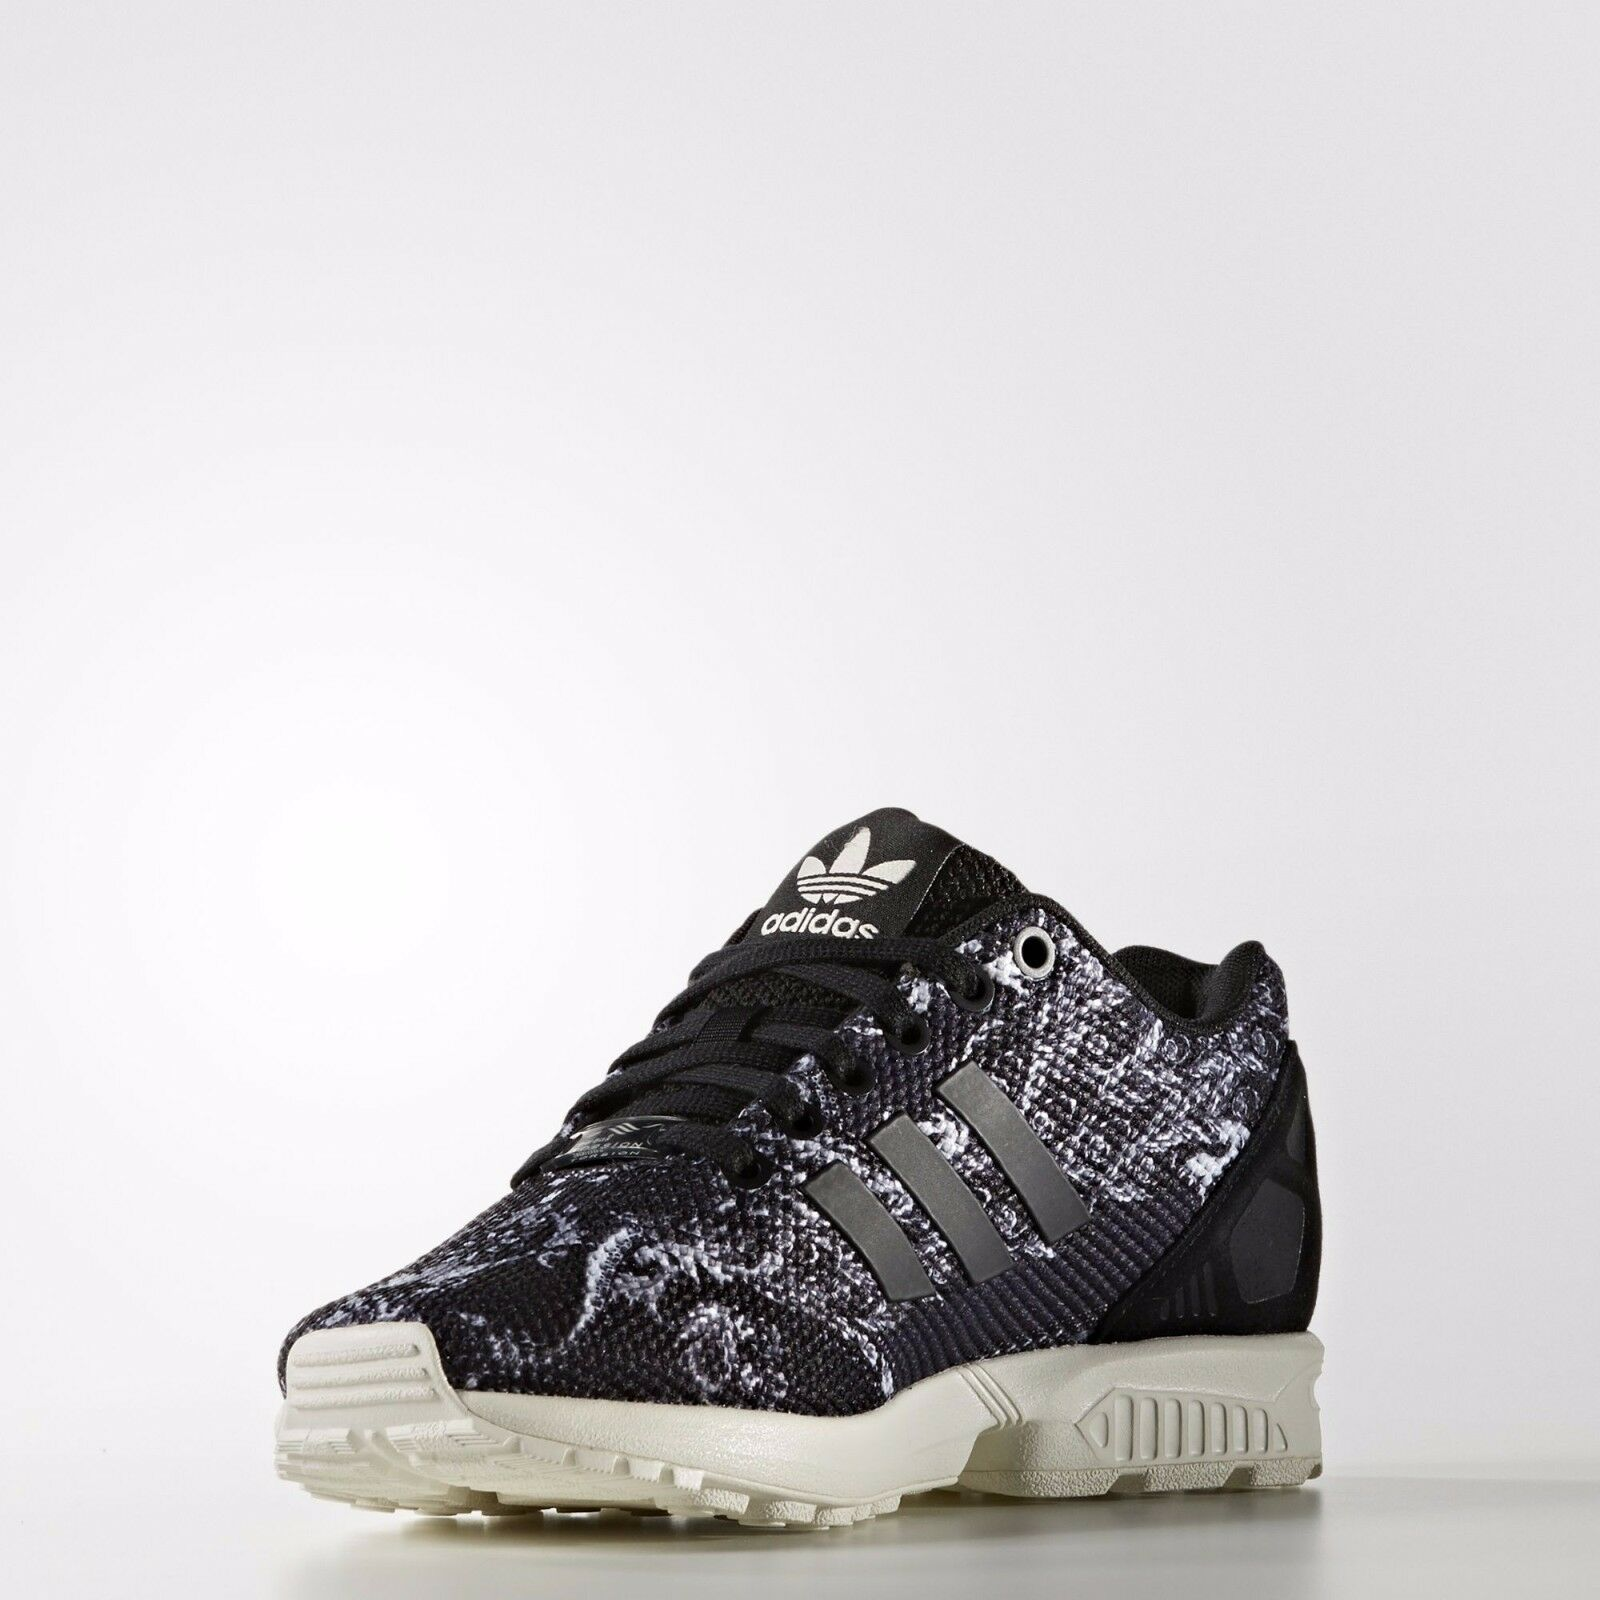 ADIDAS ORIGINALS ZX FLUX FARM RIO WOMEN'S RUNNING RUNNING RUNNING SHOES SIZE US 7.5 BLACK S76592 295415